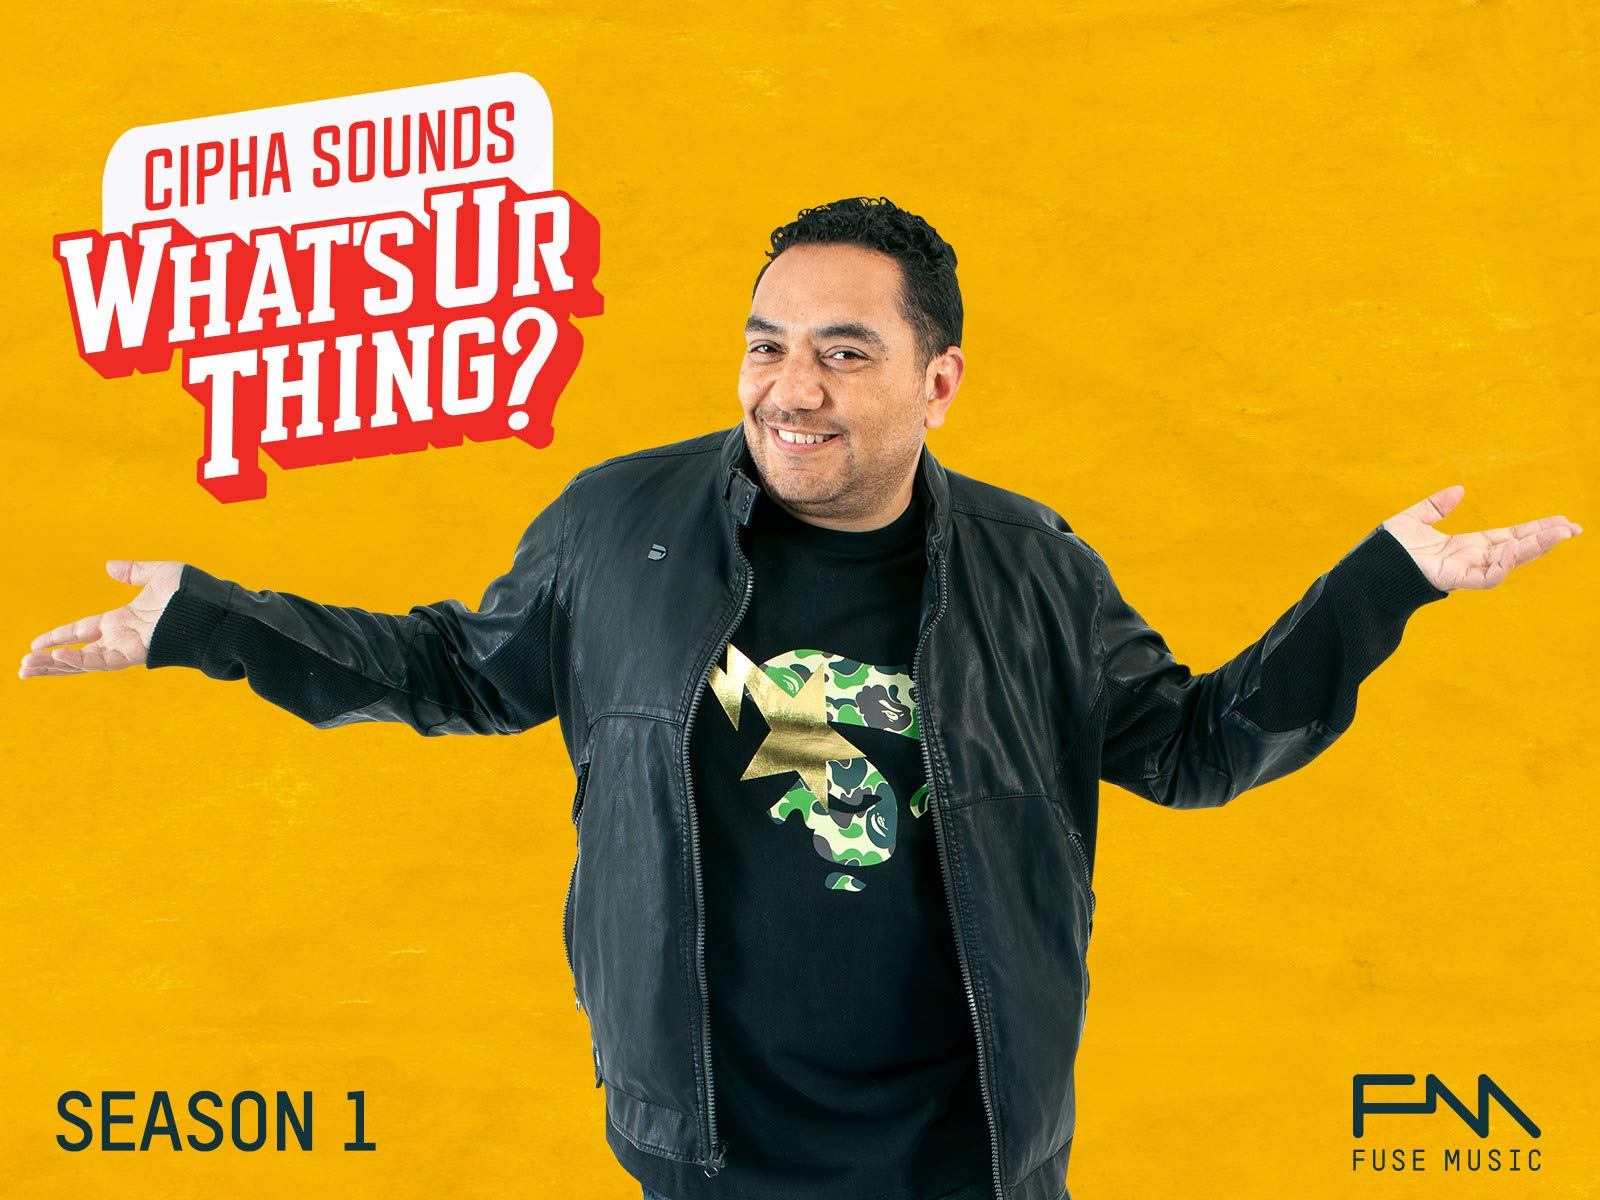 Cipha Sounds What's Ur Thing - Season 1